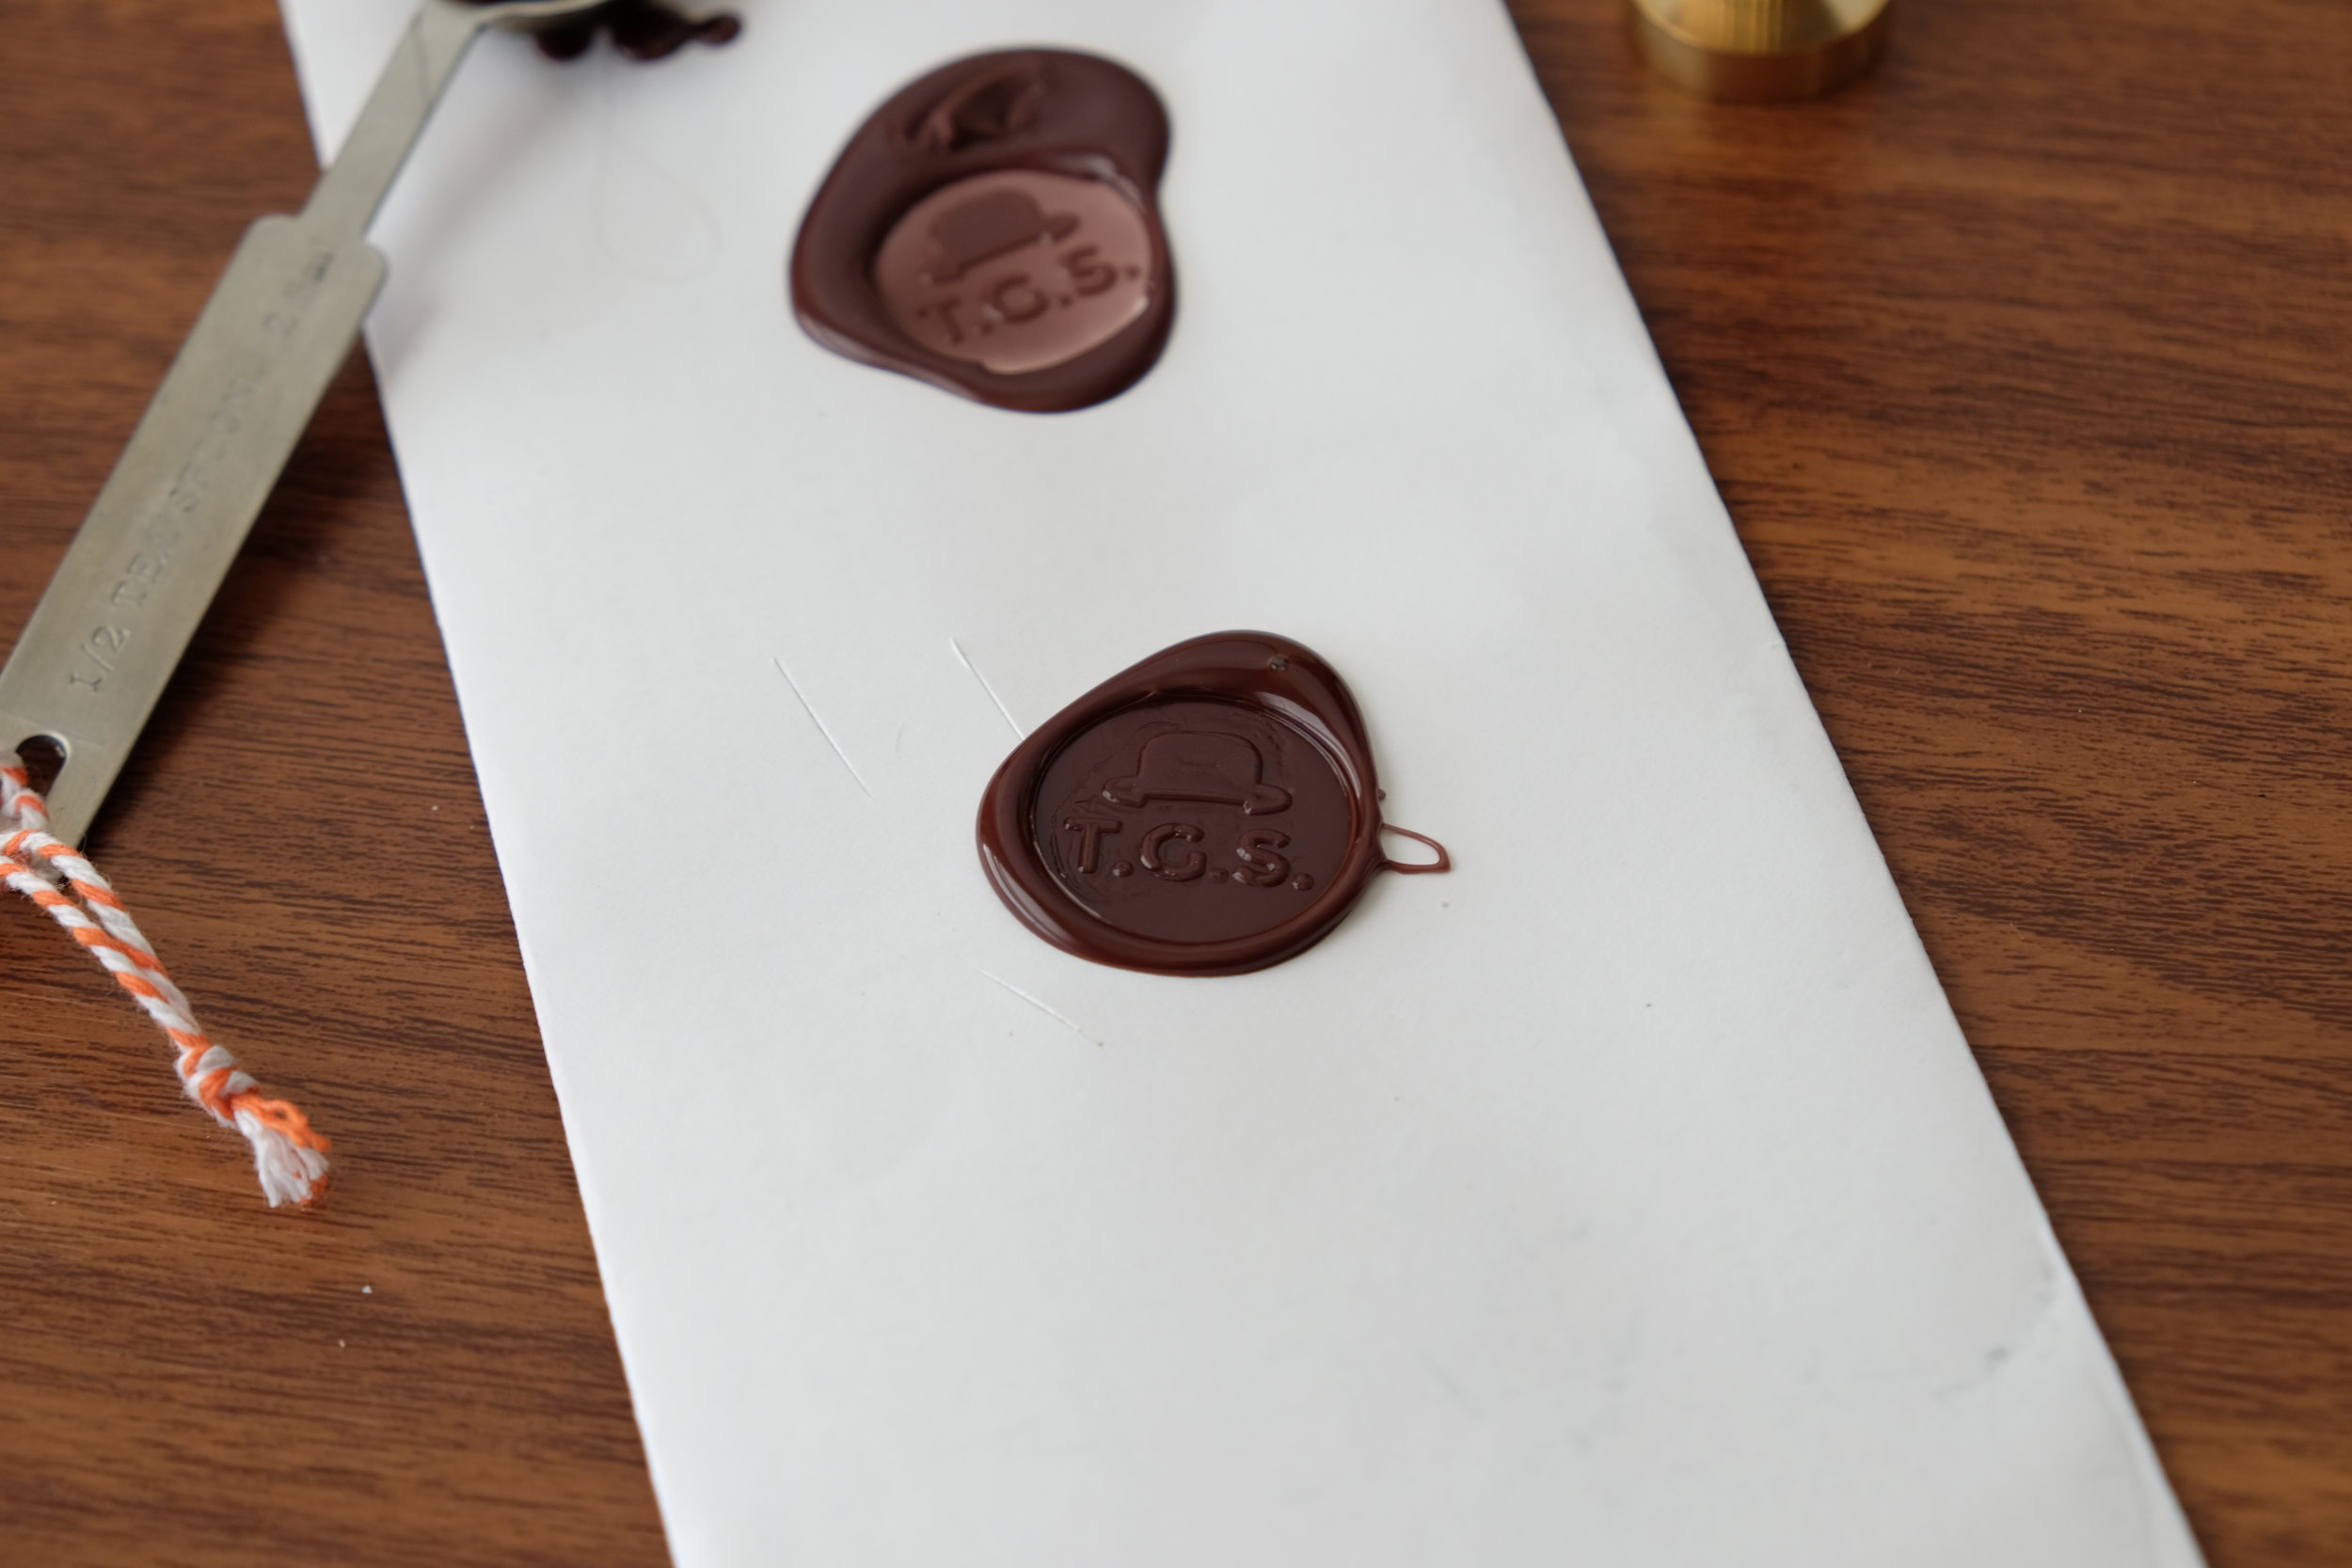 Eventually I got the hang of it. Some wax seals turned out better than others.